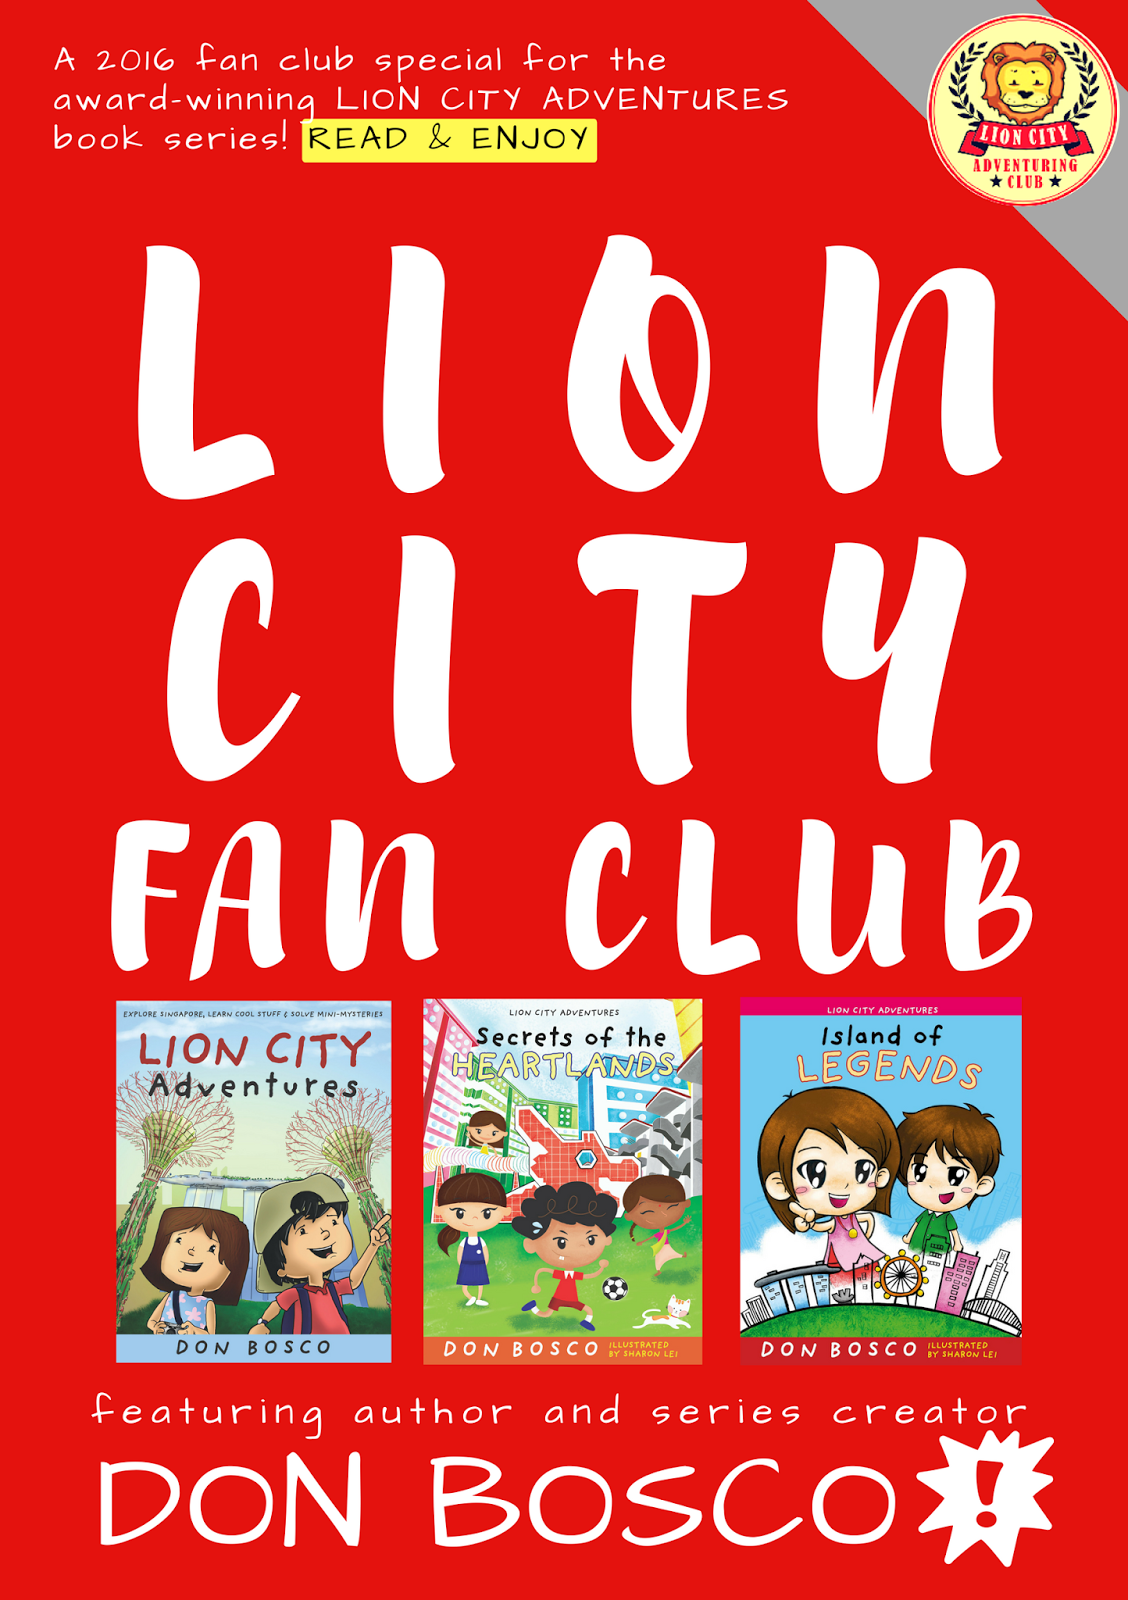 Super cool books september 2016 lion city adventures is our award winning series for young readers about a society of children dedicated to exploring singapore making new friends and solutioingenieria Image collections